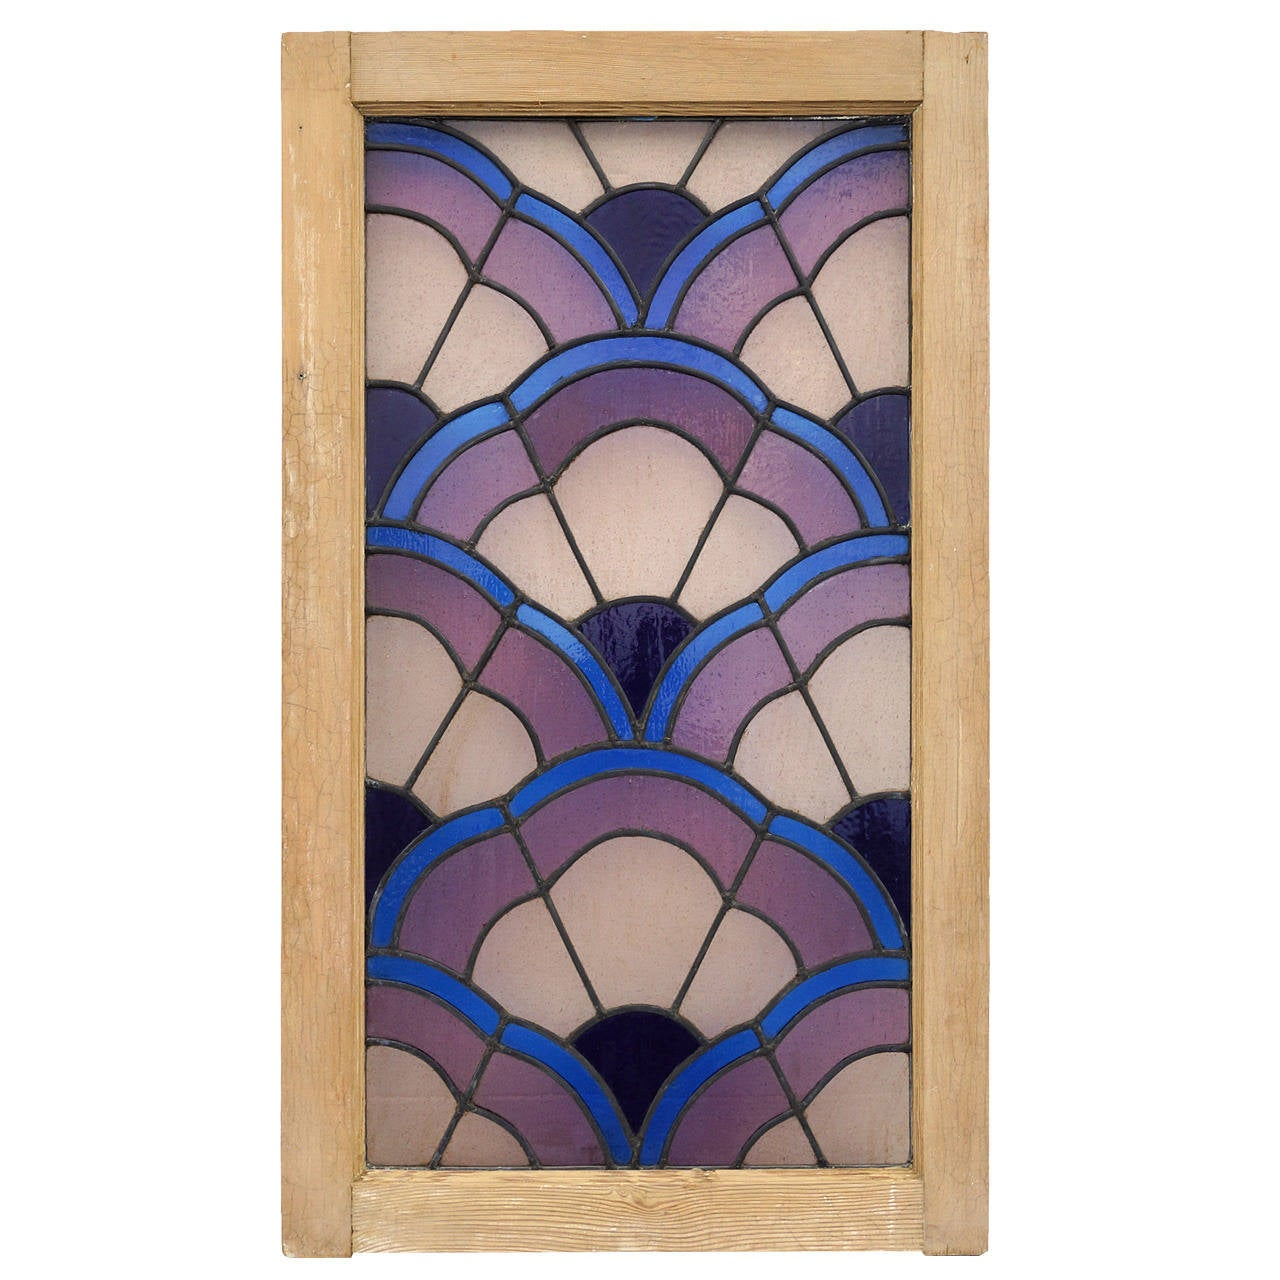 italian art deco stained glass window at 1stdibs. Black Bedroom Furniture Sets. Home Design Ideas